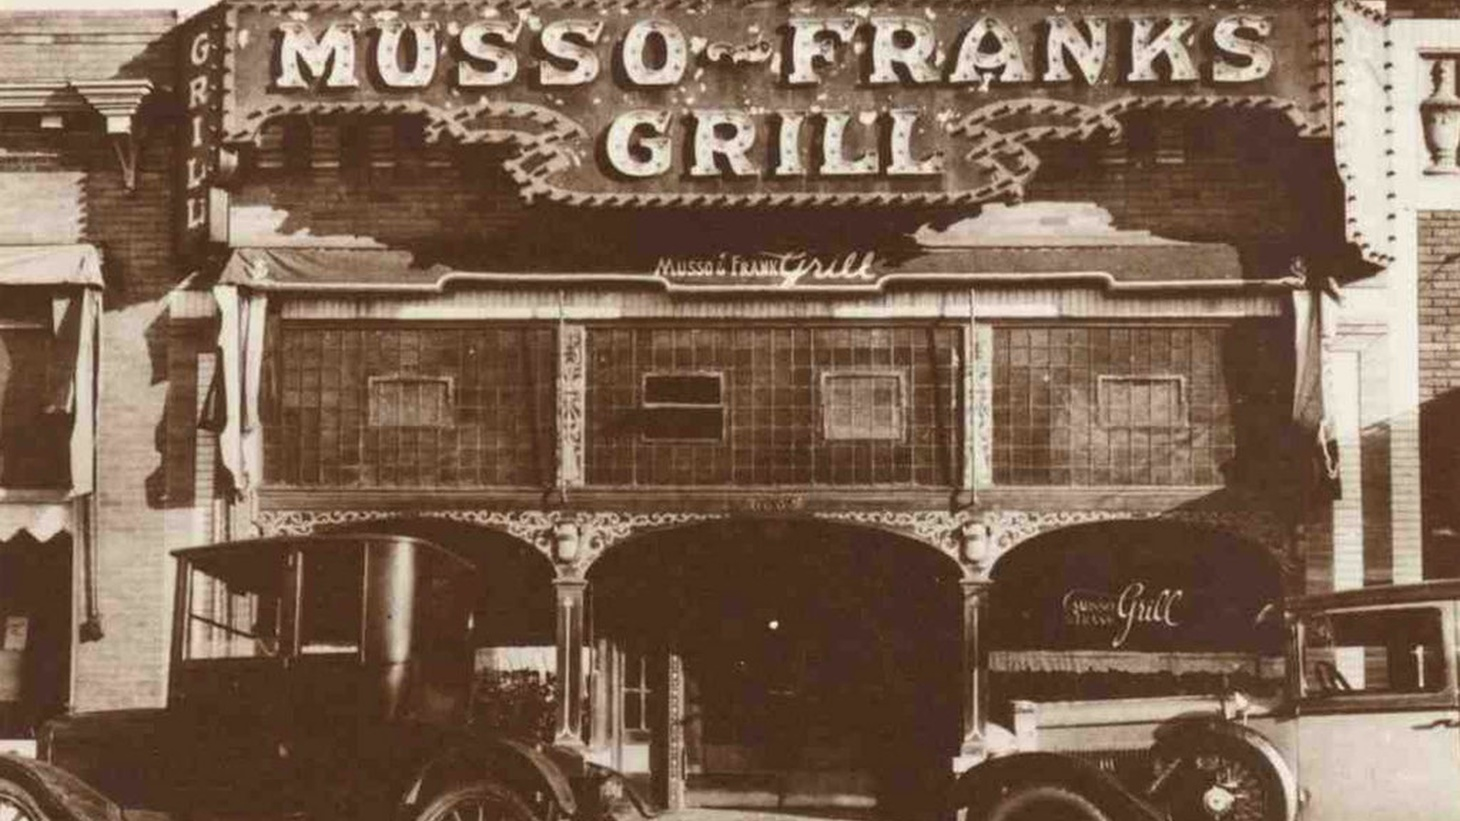 Musso & Frank in 1928.